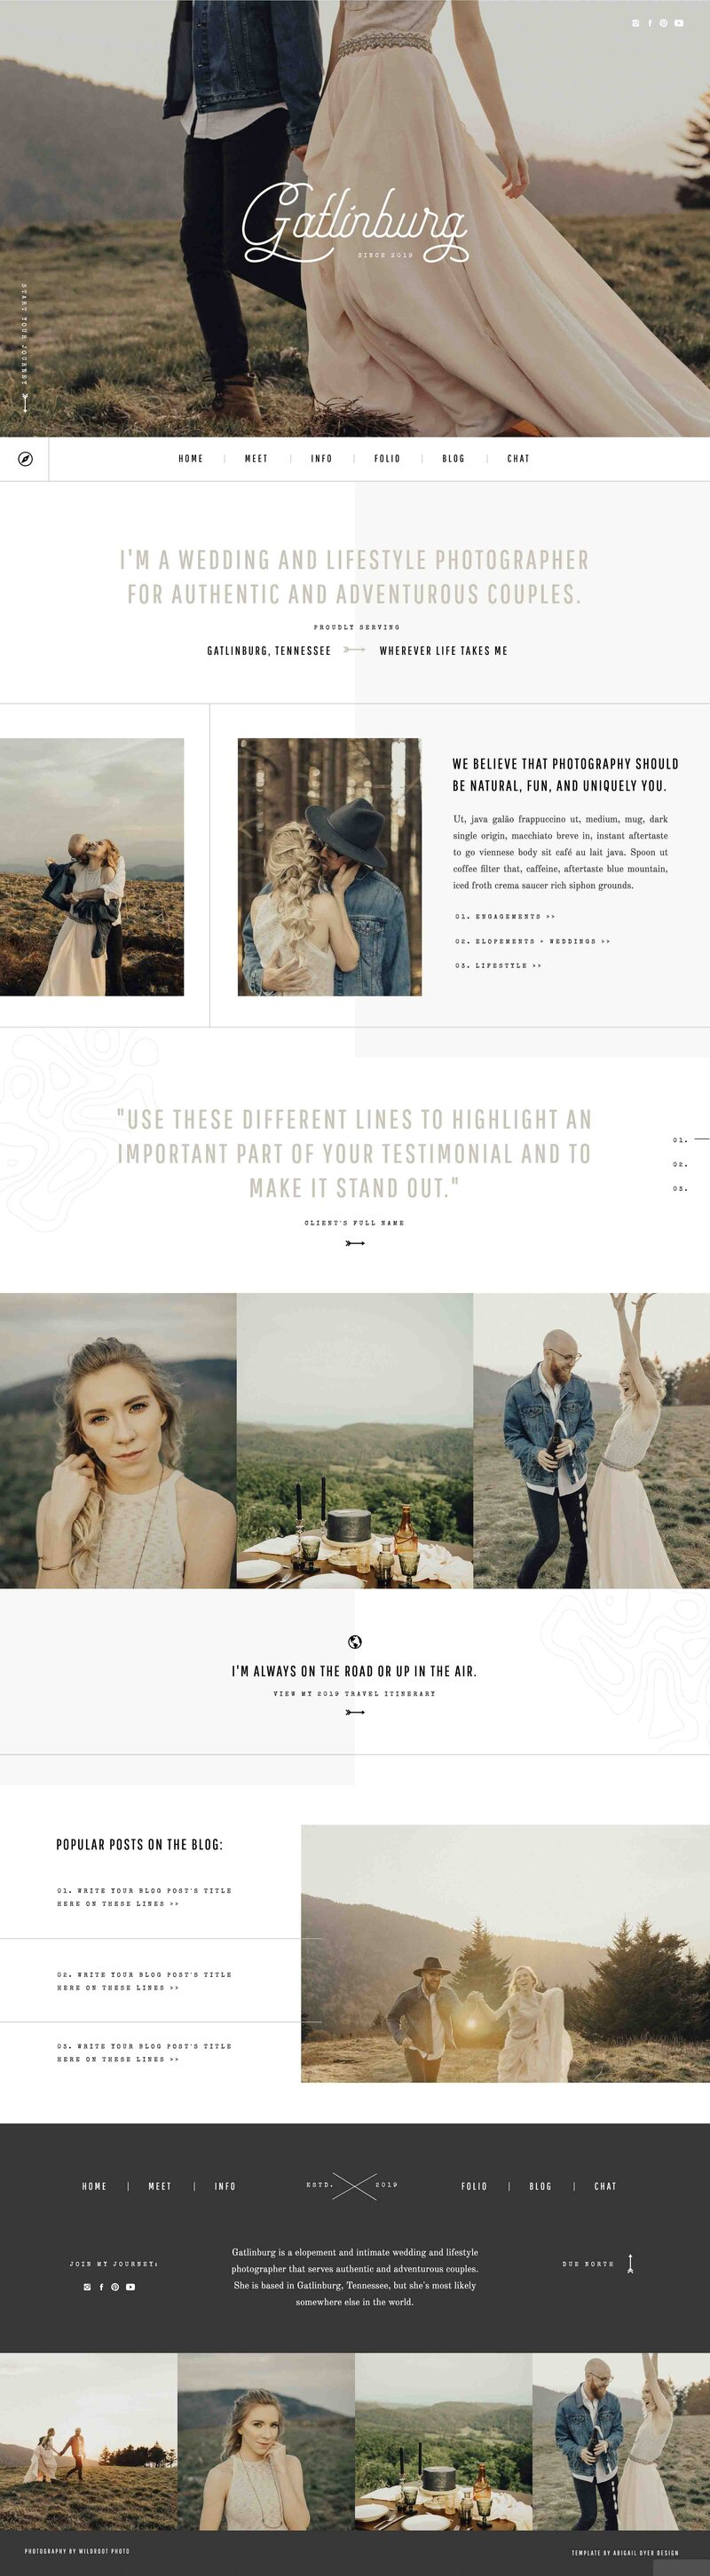 Showit-Website-Template